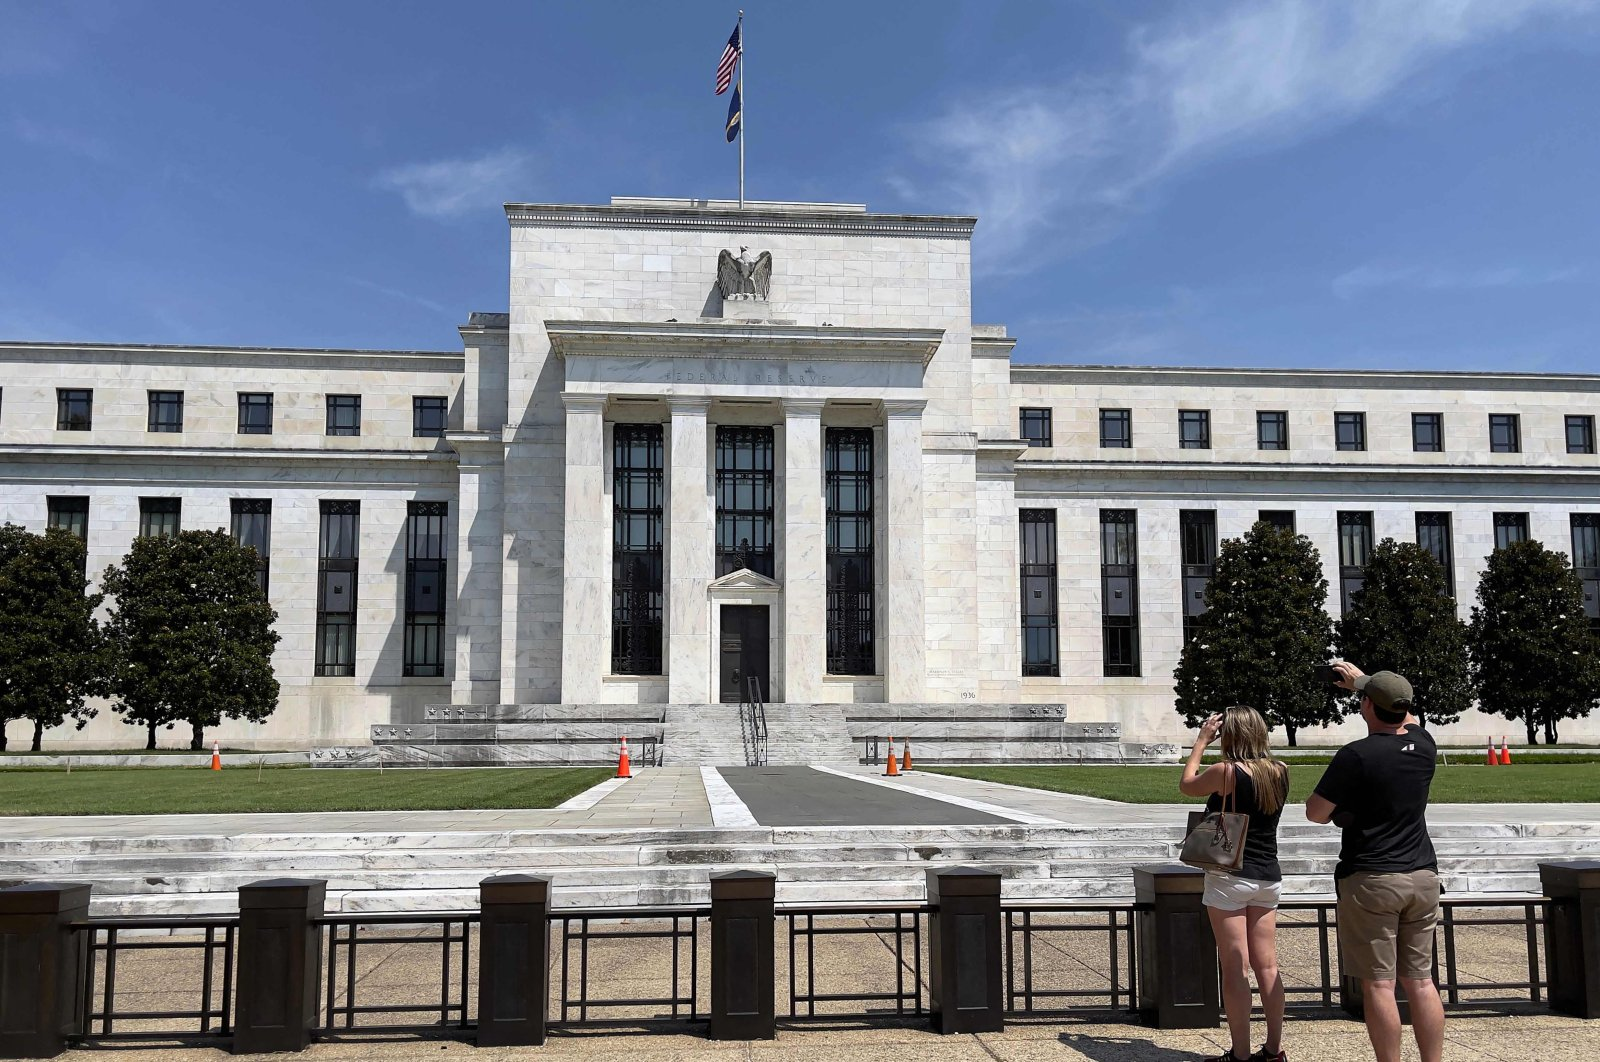 People take pictures of the U.S. Federal Reserve (Fed) building in Washington, D.C., U.S., Aug. 6, 2021. (AFP Photo)